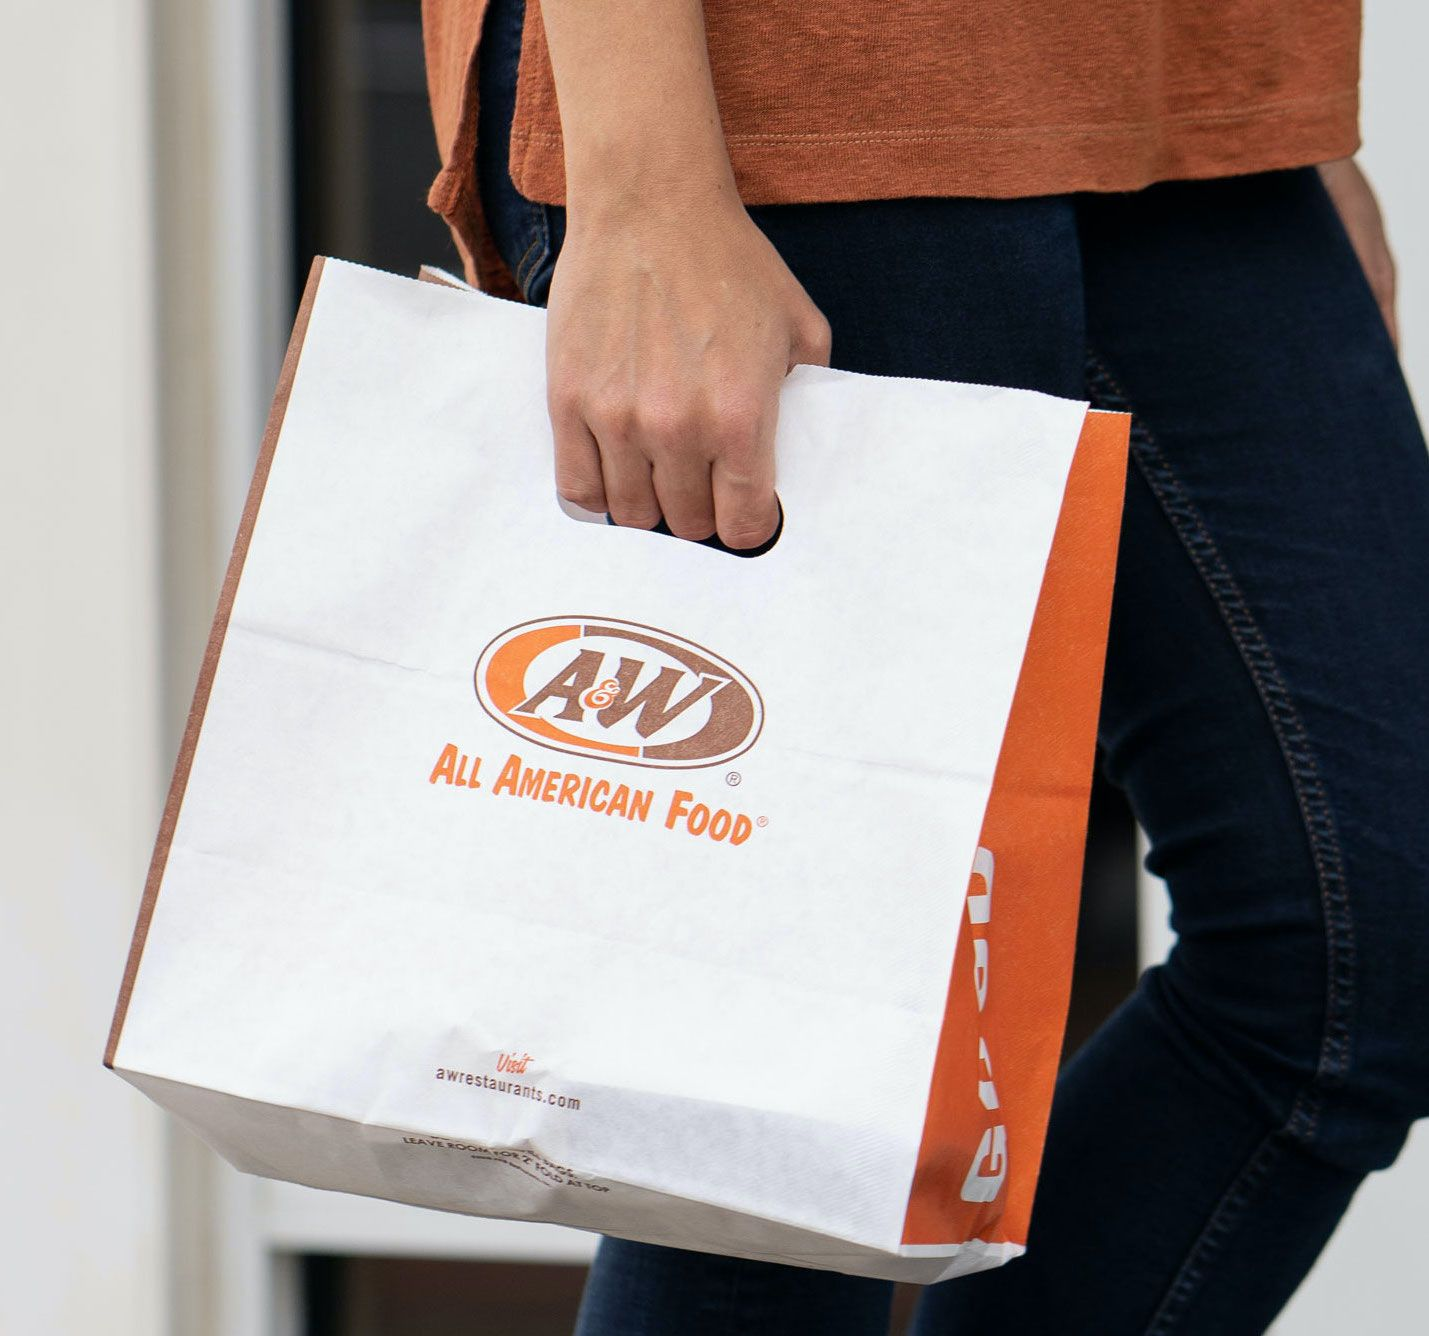 Chicago Real Estate Developer Puts Fizz into A&W's Growth Strategy with Plans for Five Restaurants